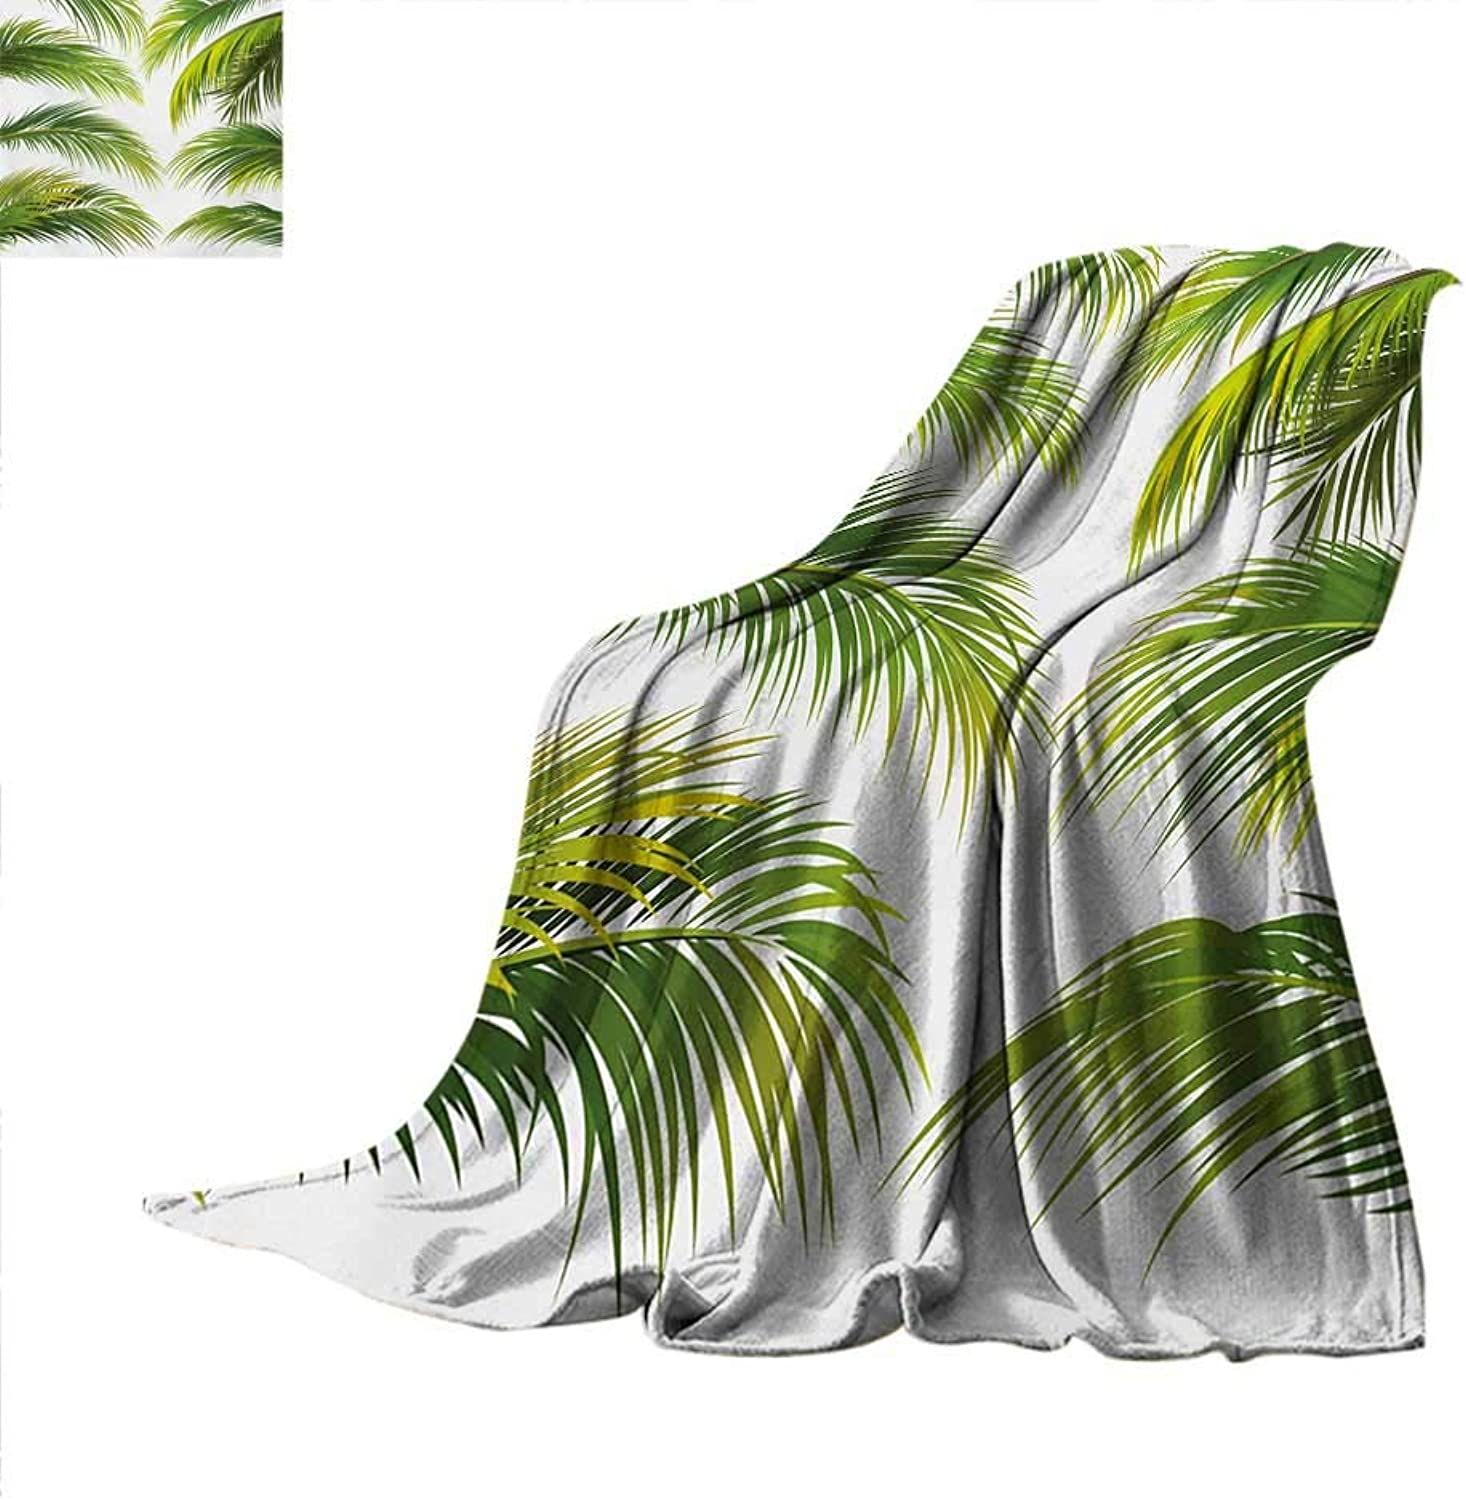 Palm Leaf Weave Pattern Blanket Vivid Palm Leaves Growth Jungle Lush Foliage Summer Forest Botany Summer Quilt Comforter 60 x50  Green Lime Green White